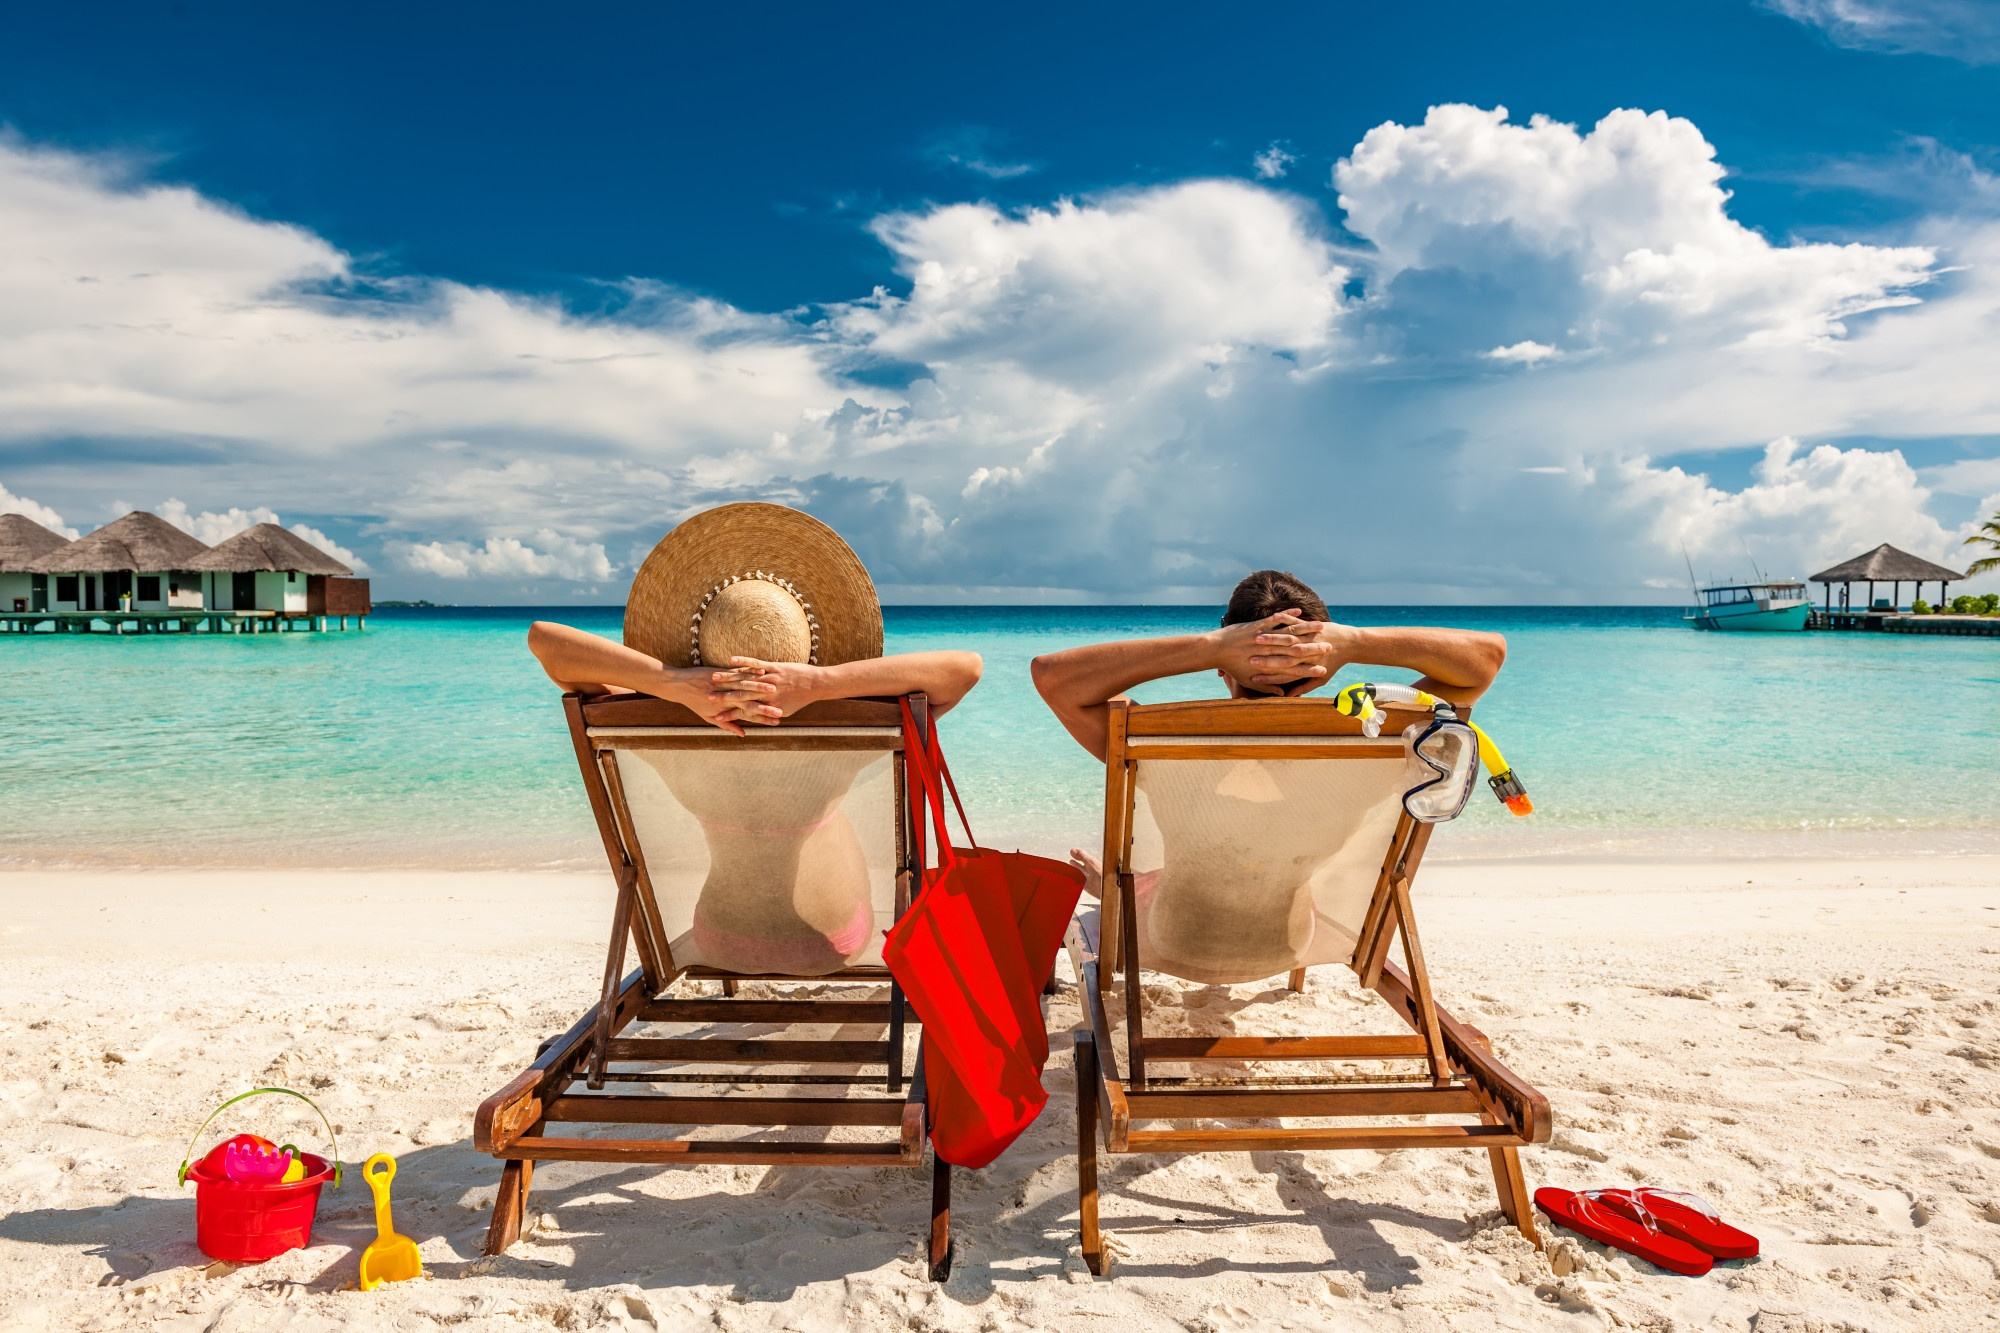 7 Common Vacation Mistakes to Avoid for Couples